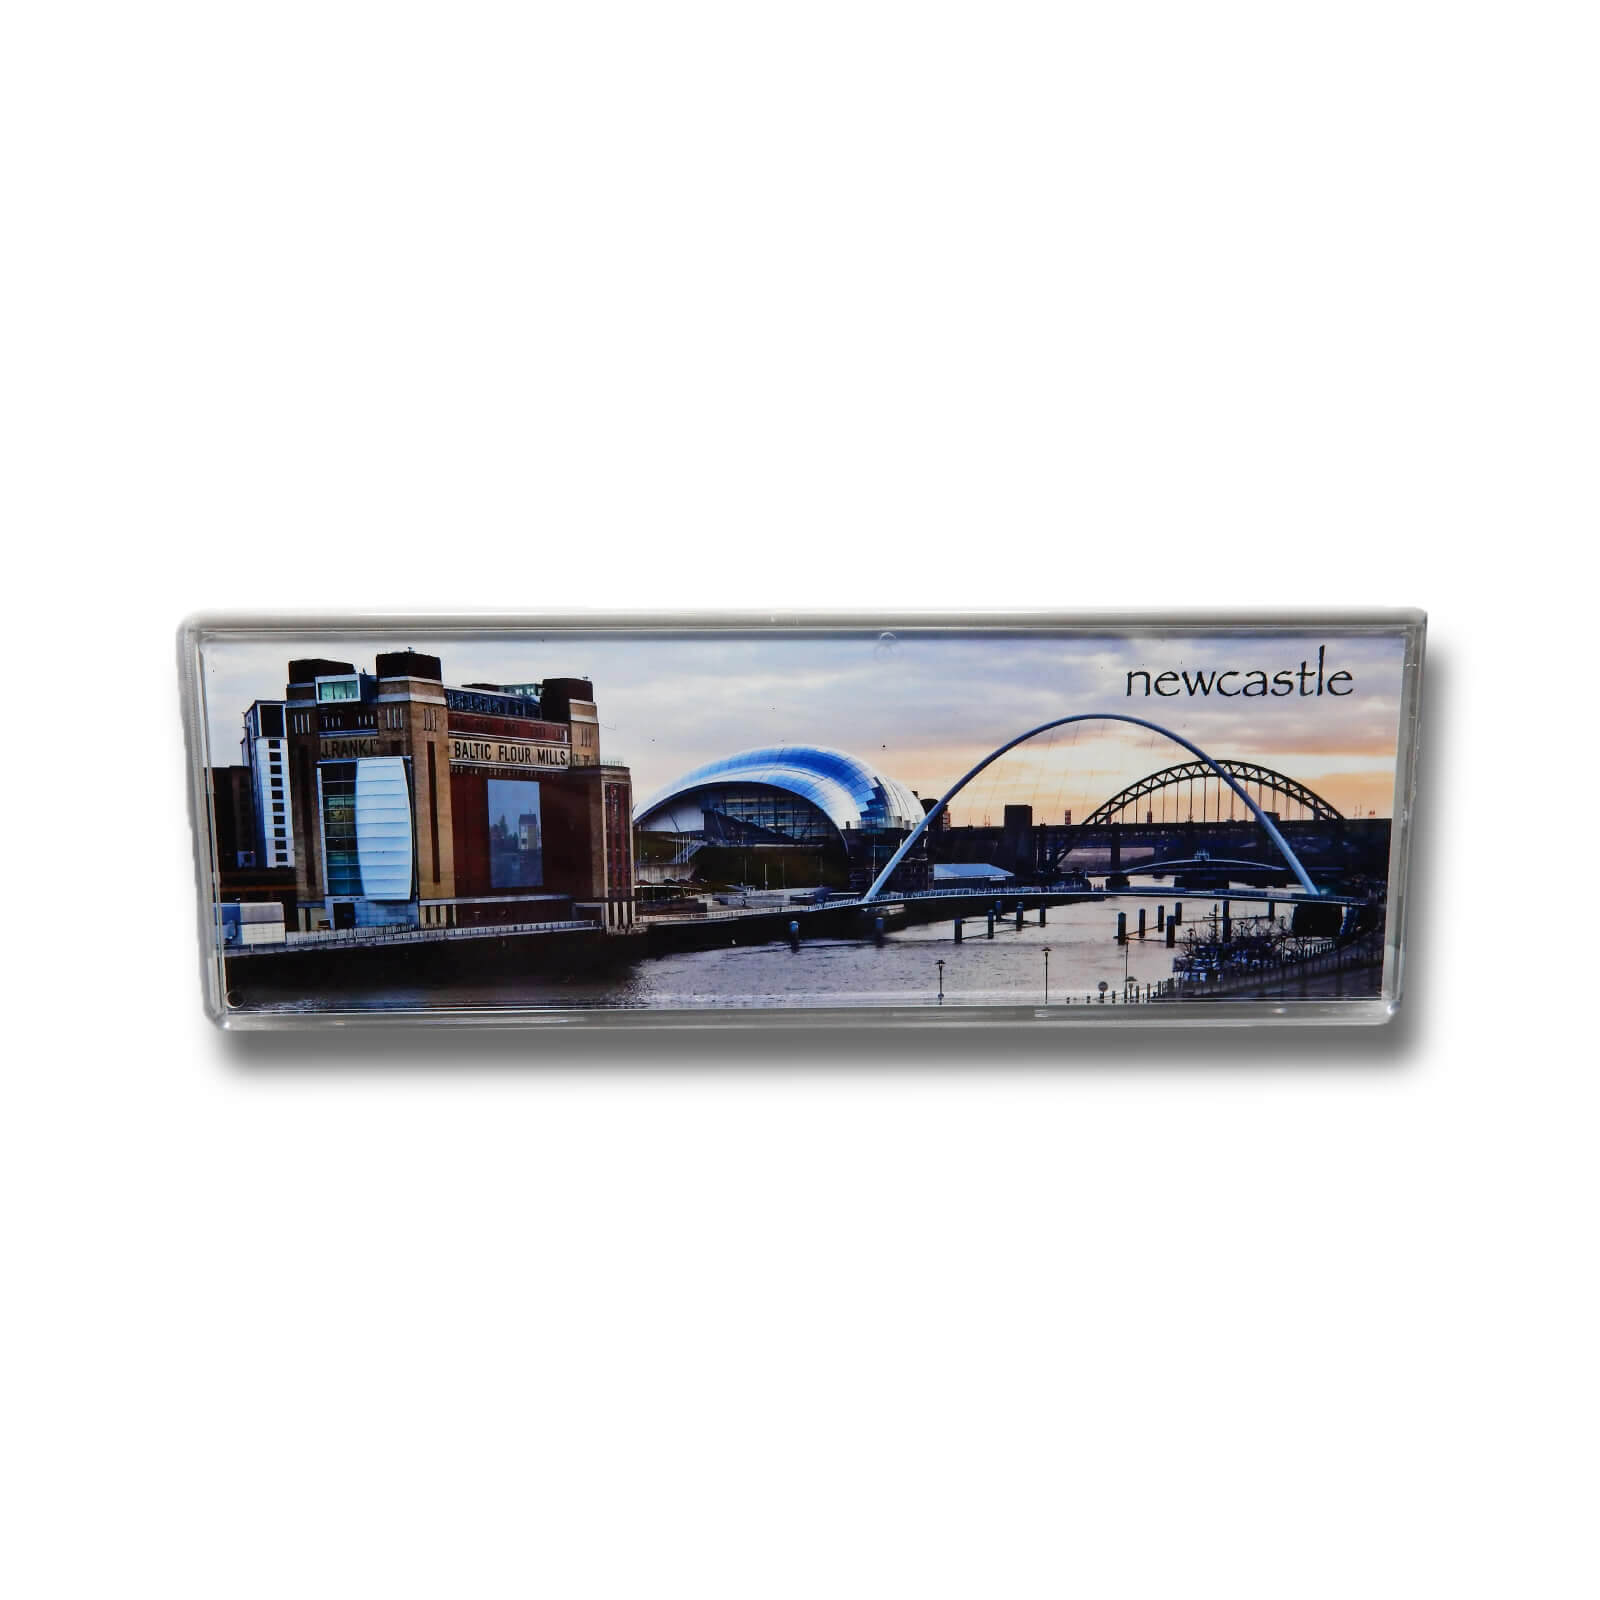 Millennium Bridge & River TynePanoramic Photo Magnet